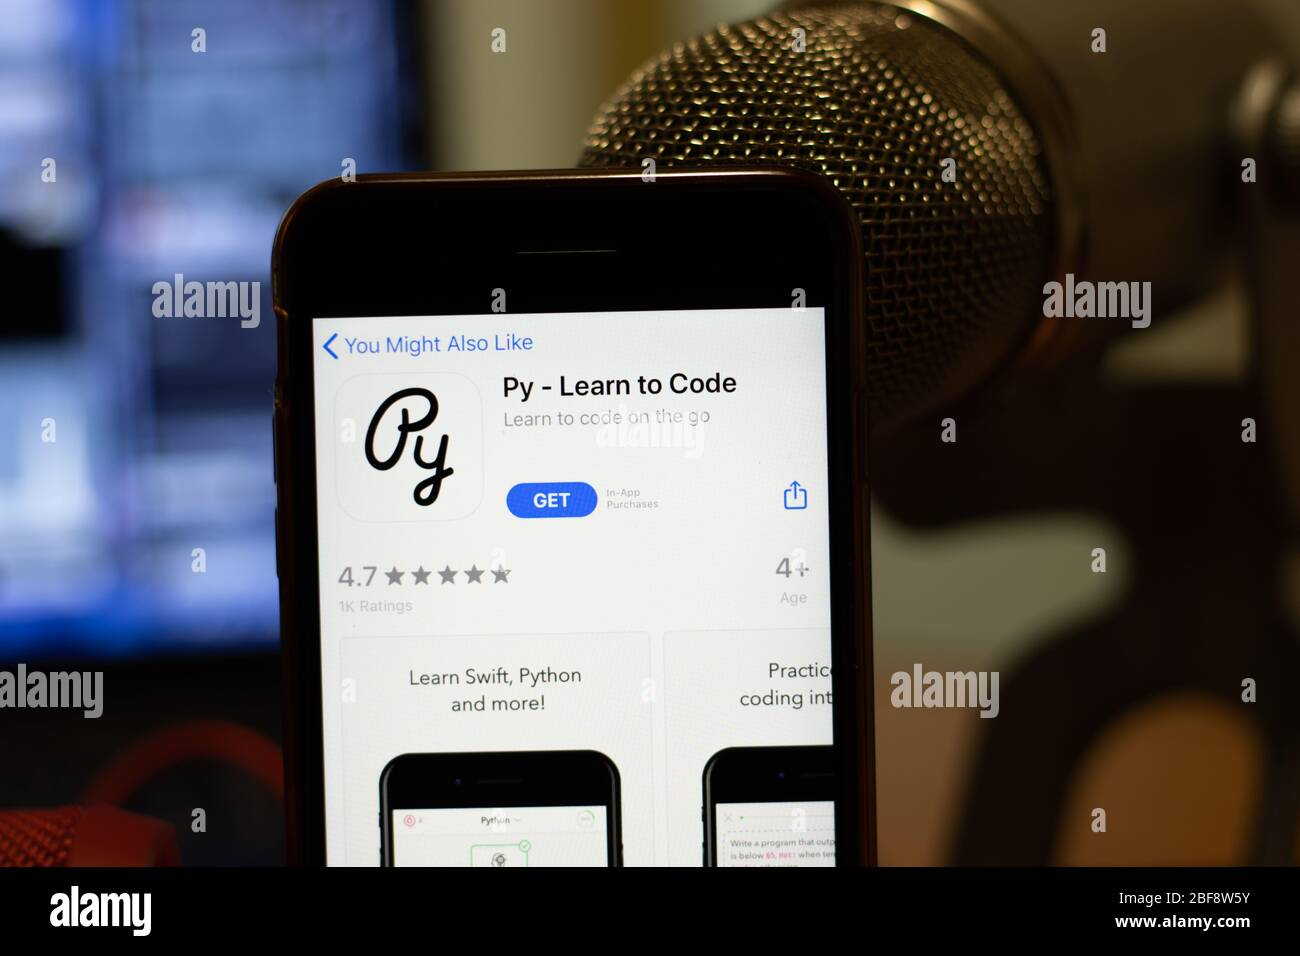 Los Angeles, California, USA - 16 April 2020: Py Learn to Code logo on screen close up. App store icon visible on phone display, Illustrative Stock Photo